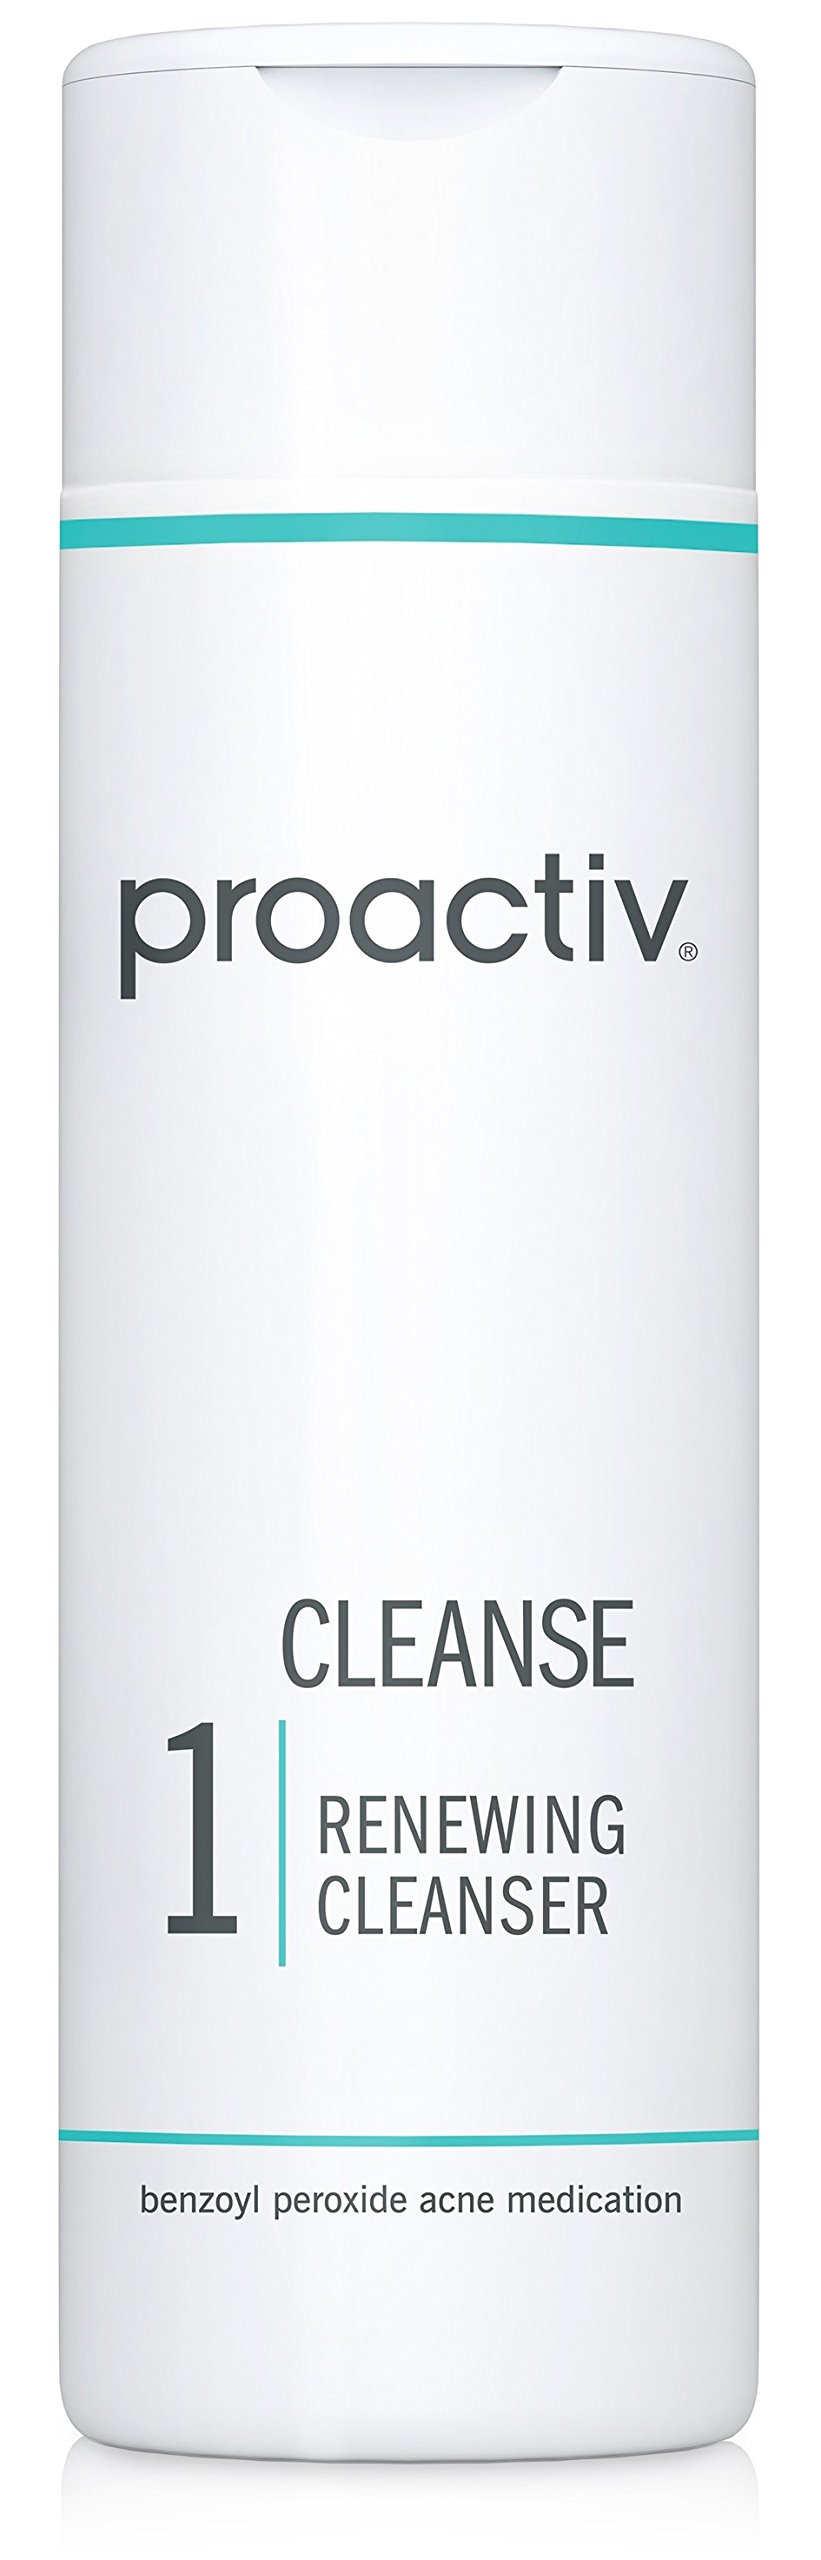 Proactiv Renewing Cleanser, 6 Ounce (90 Day) by Proactiv